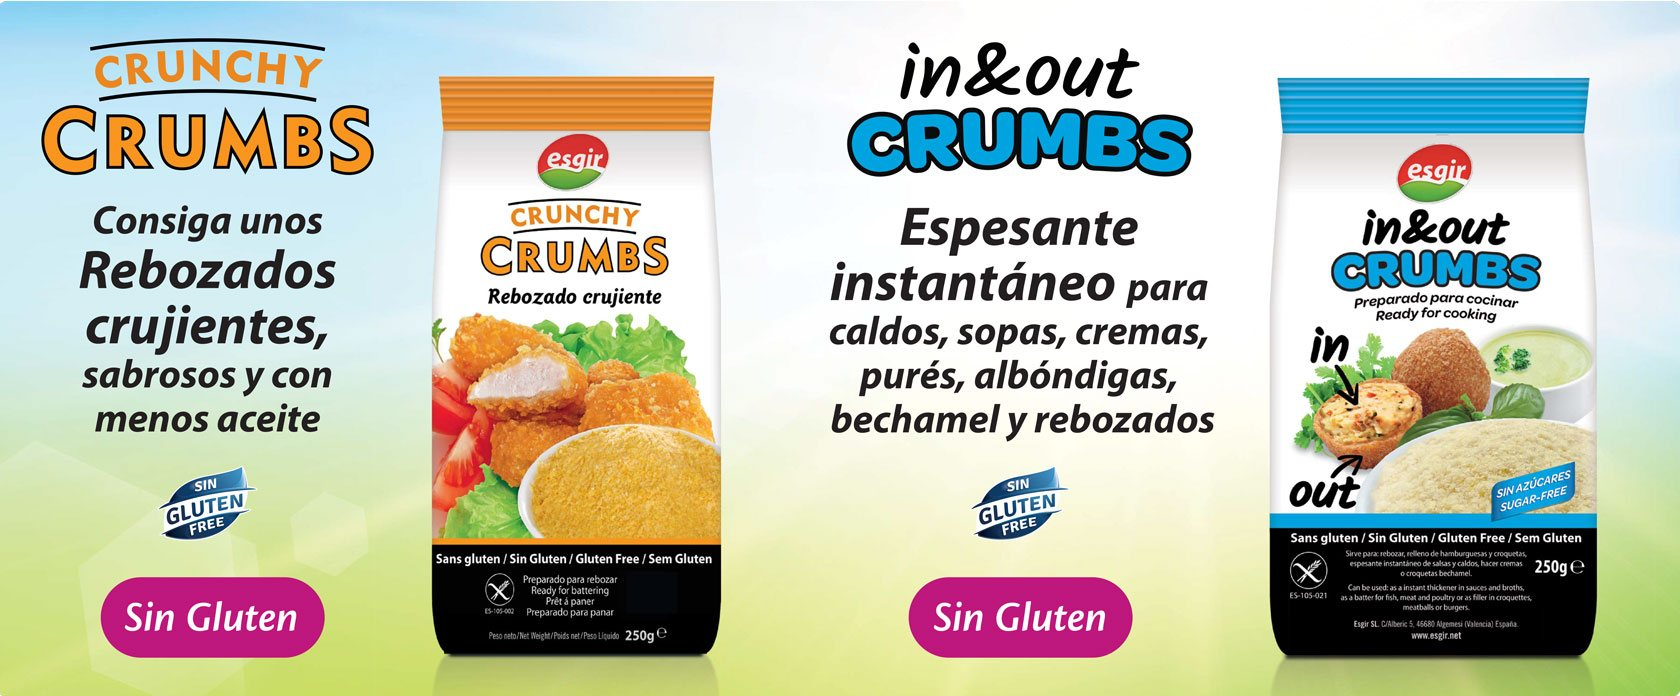 crunchy crumbs y in&out banner